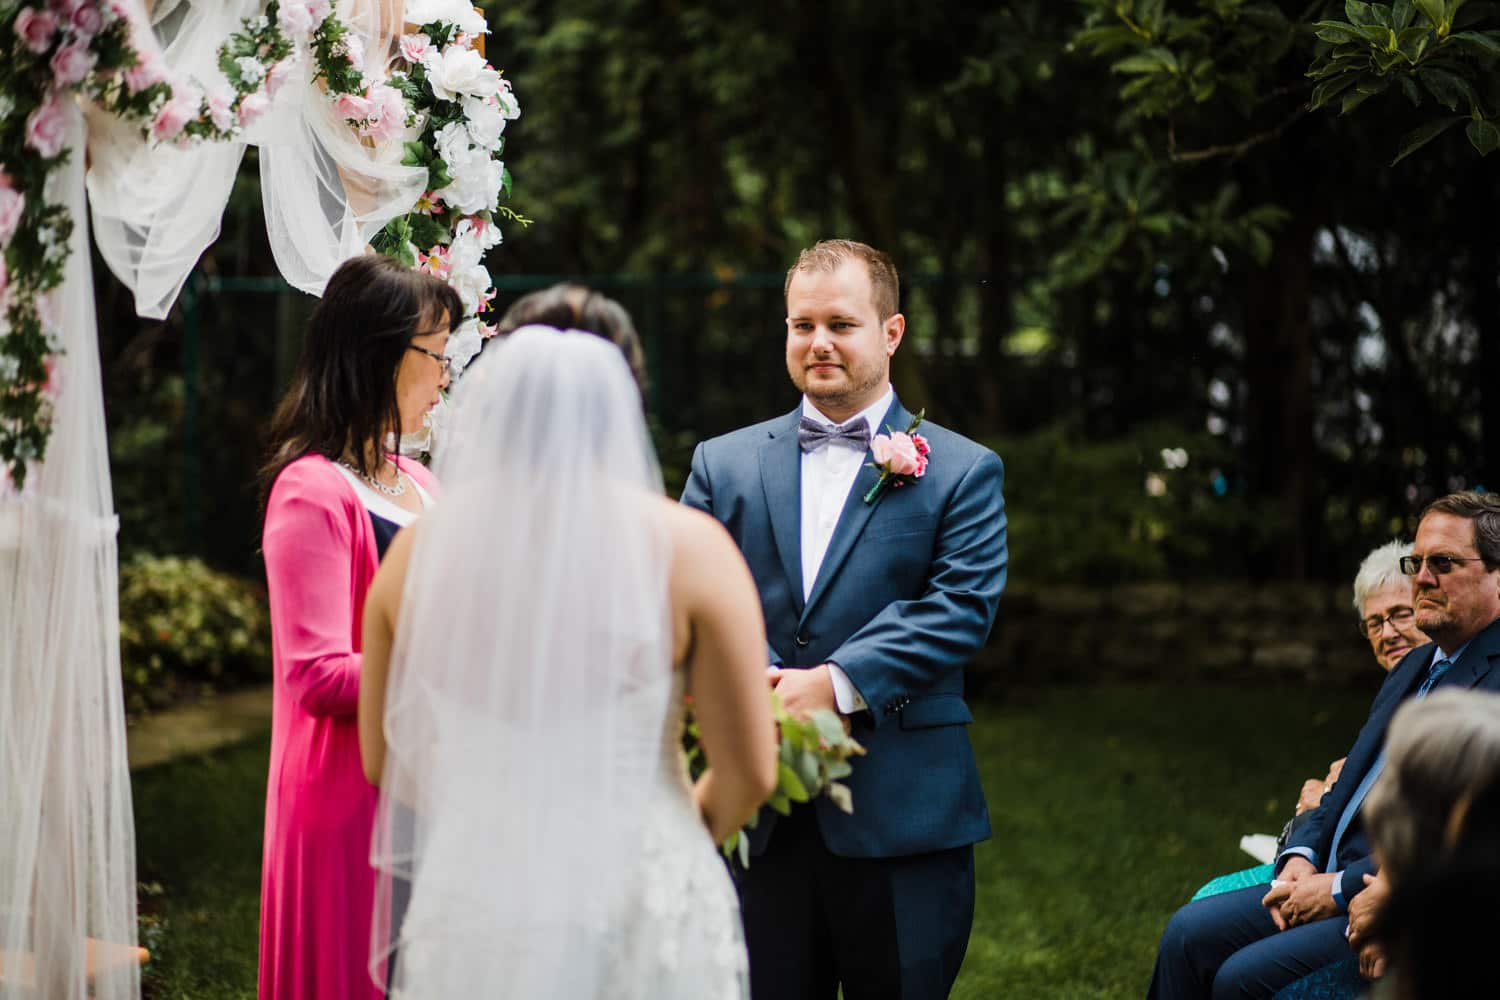 bride and groom recite vows - small ottawa backyard wedding